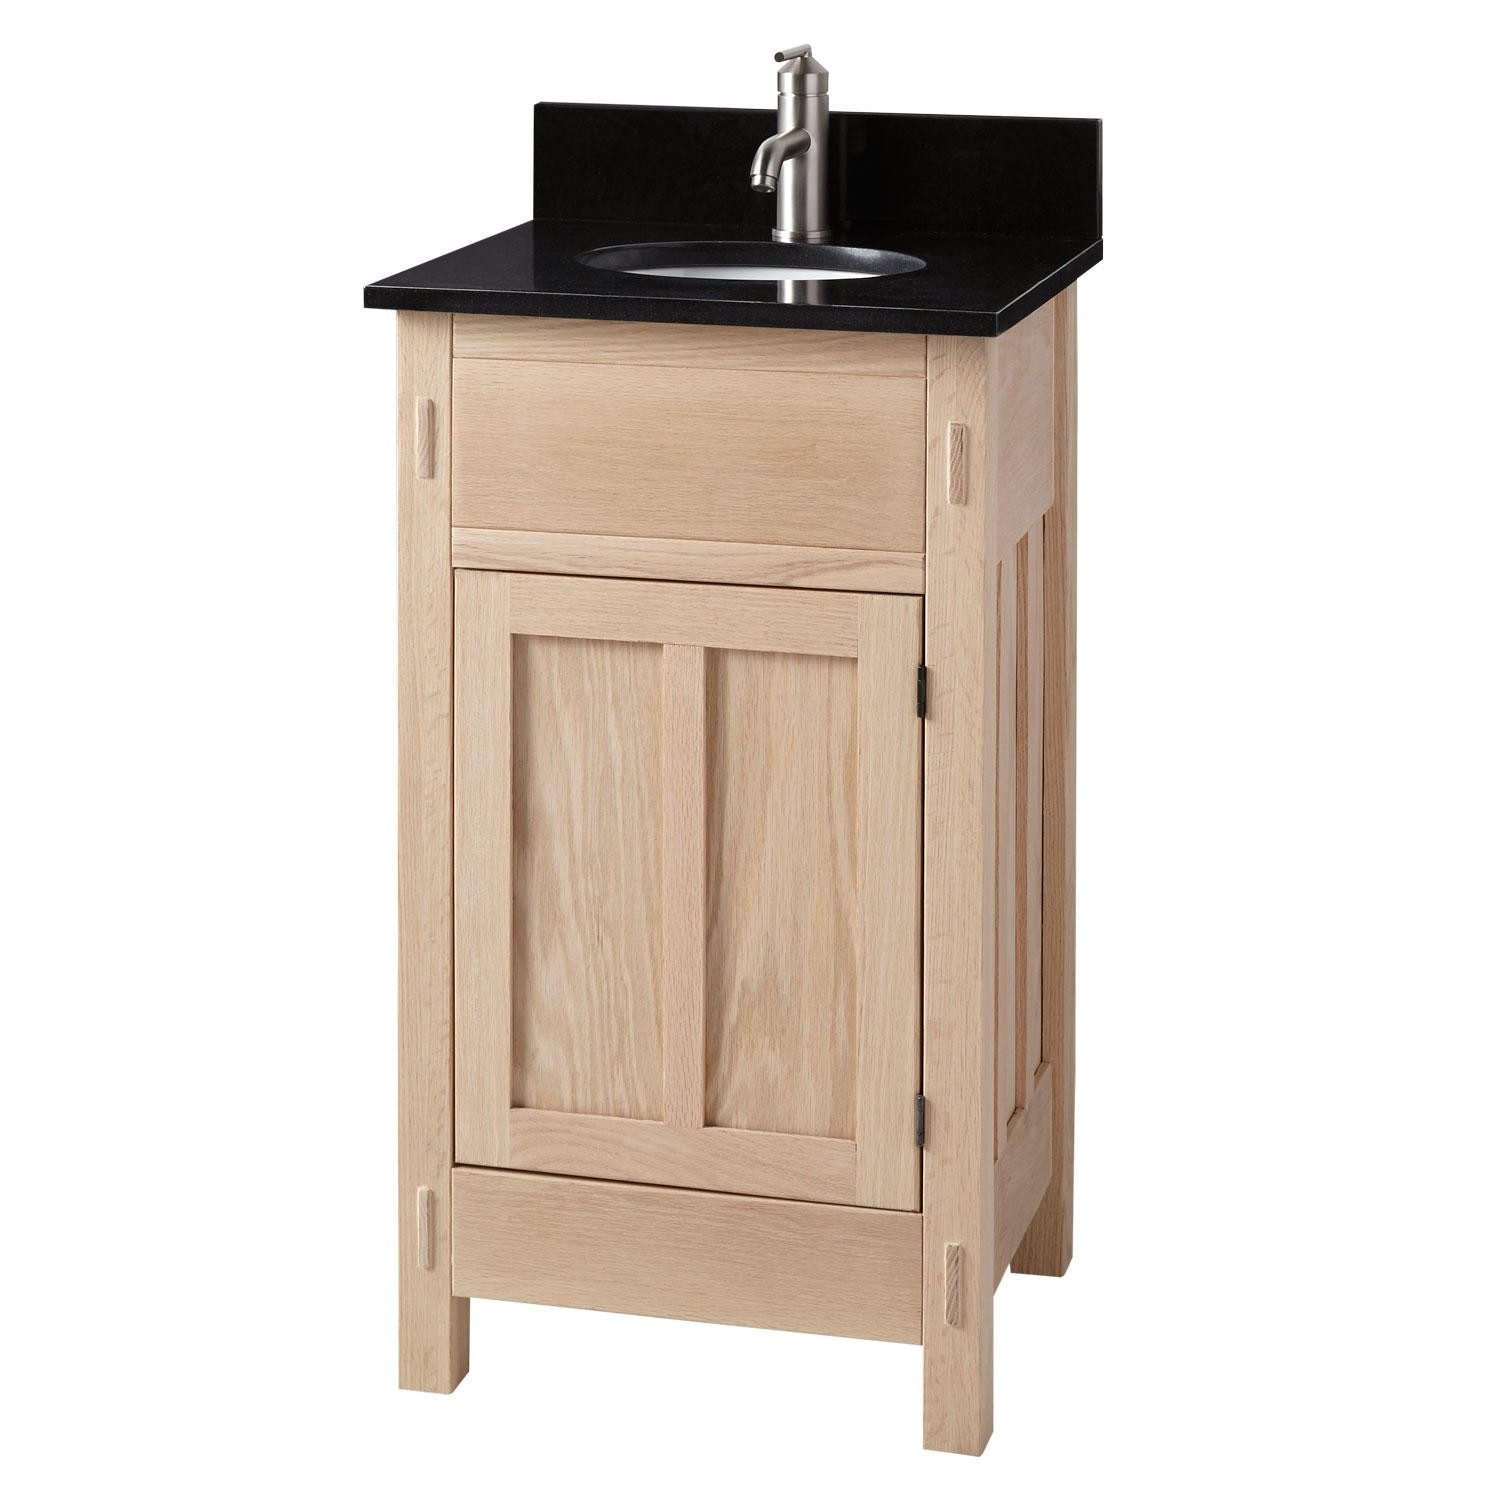 19 Bathroom Vanity And Sink